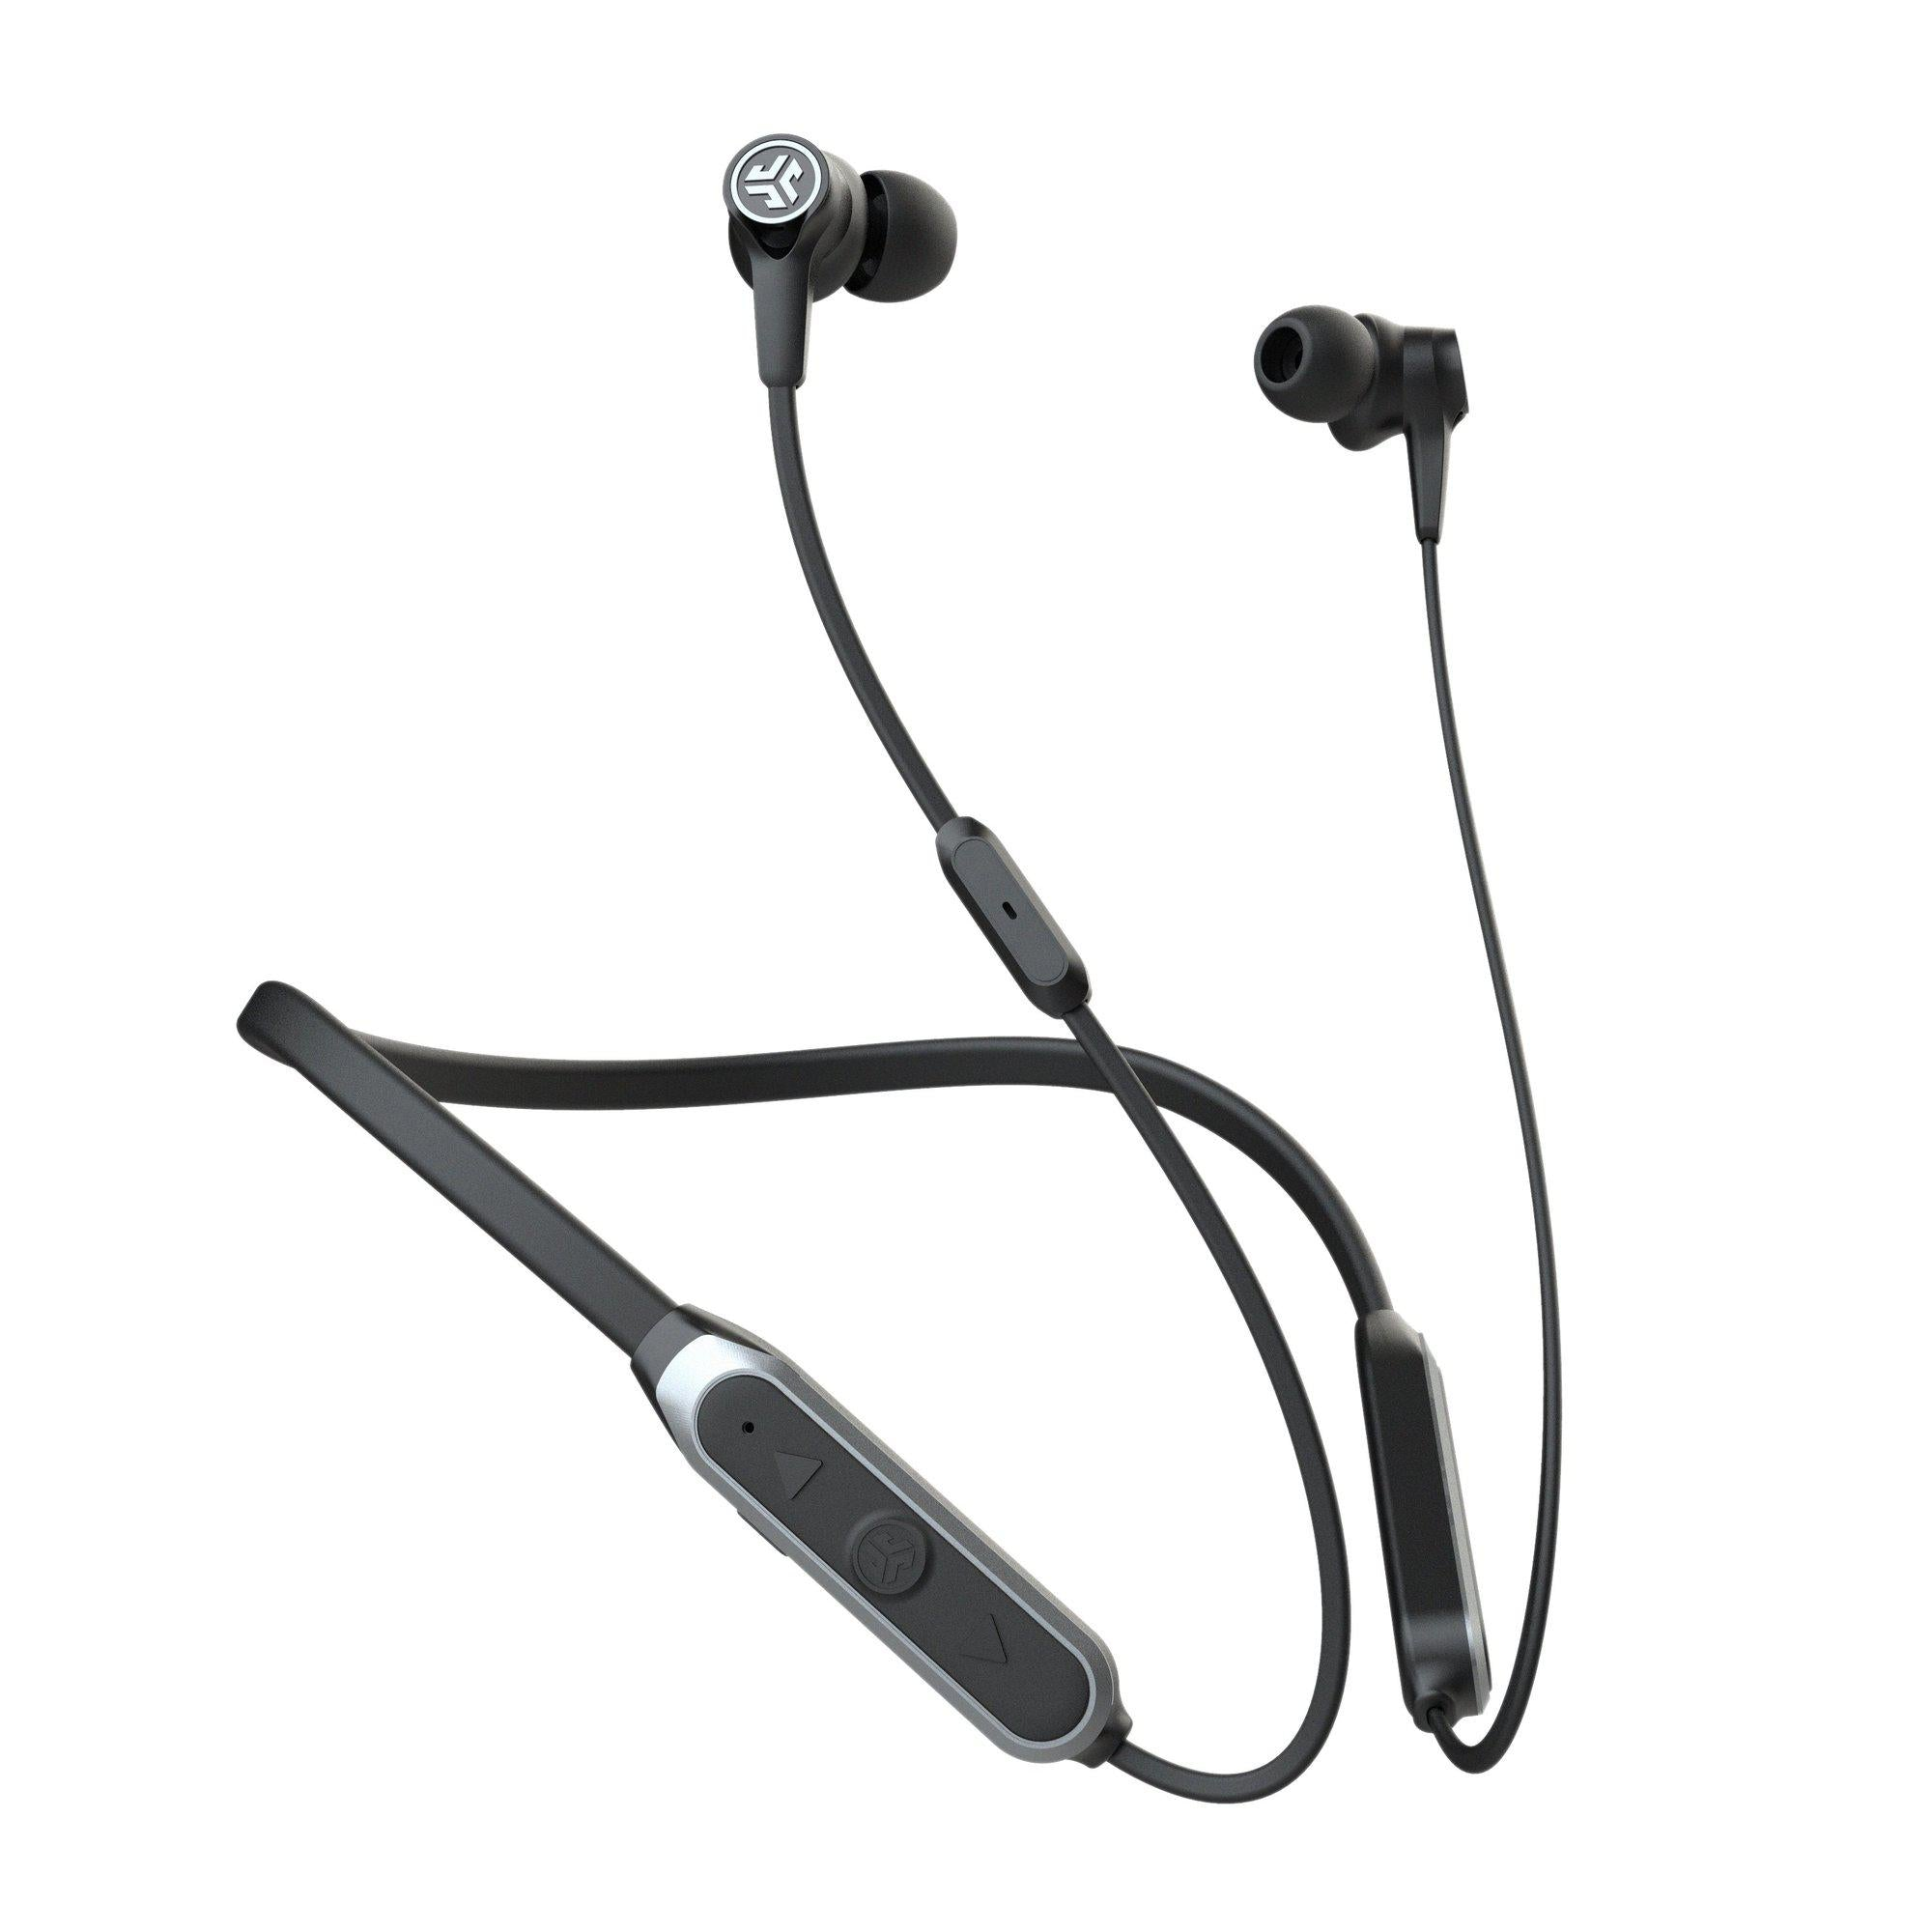 JLAB EPIC ANC WIRELESS ACTIVE NOISE CANCELING EARBUDS